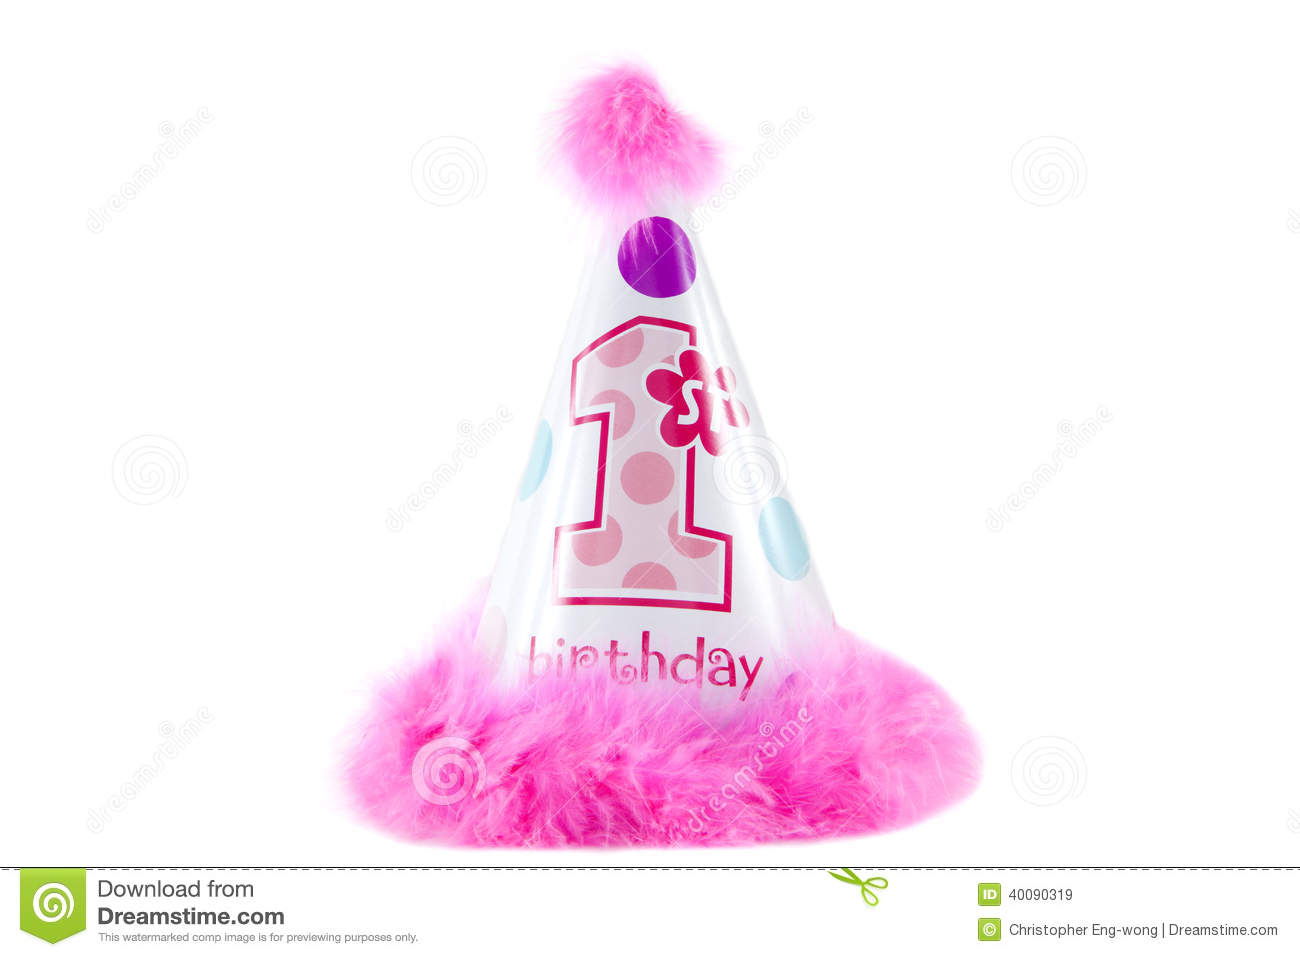 A Girls 1st Birthday Hat Against White Background